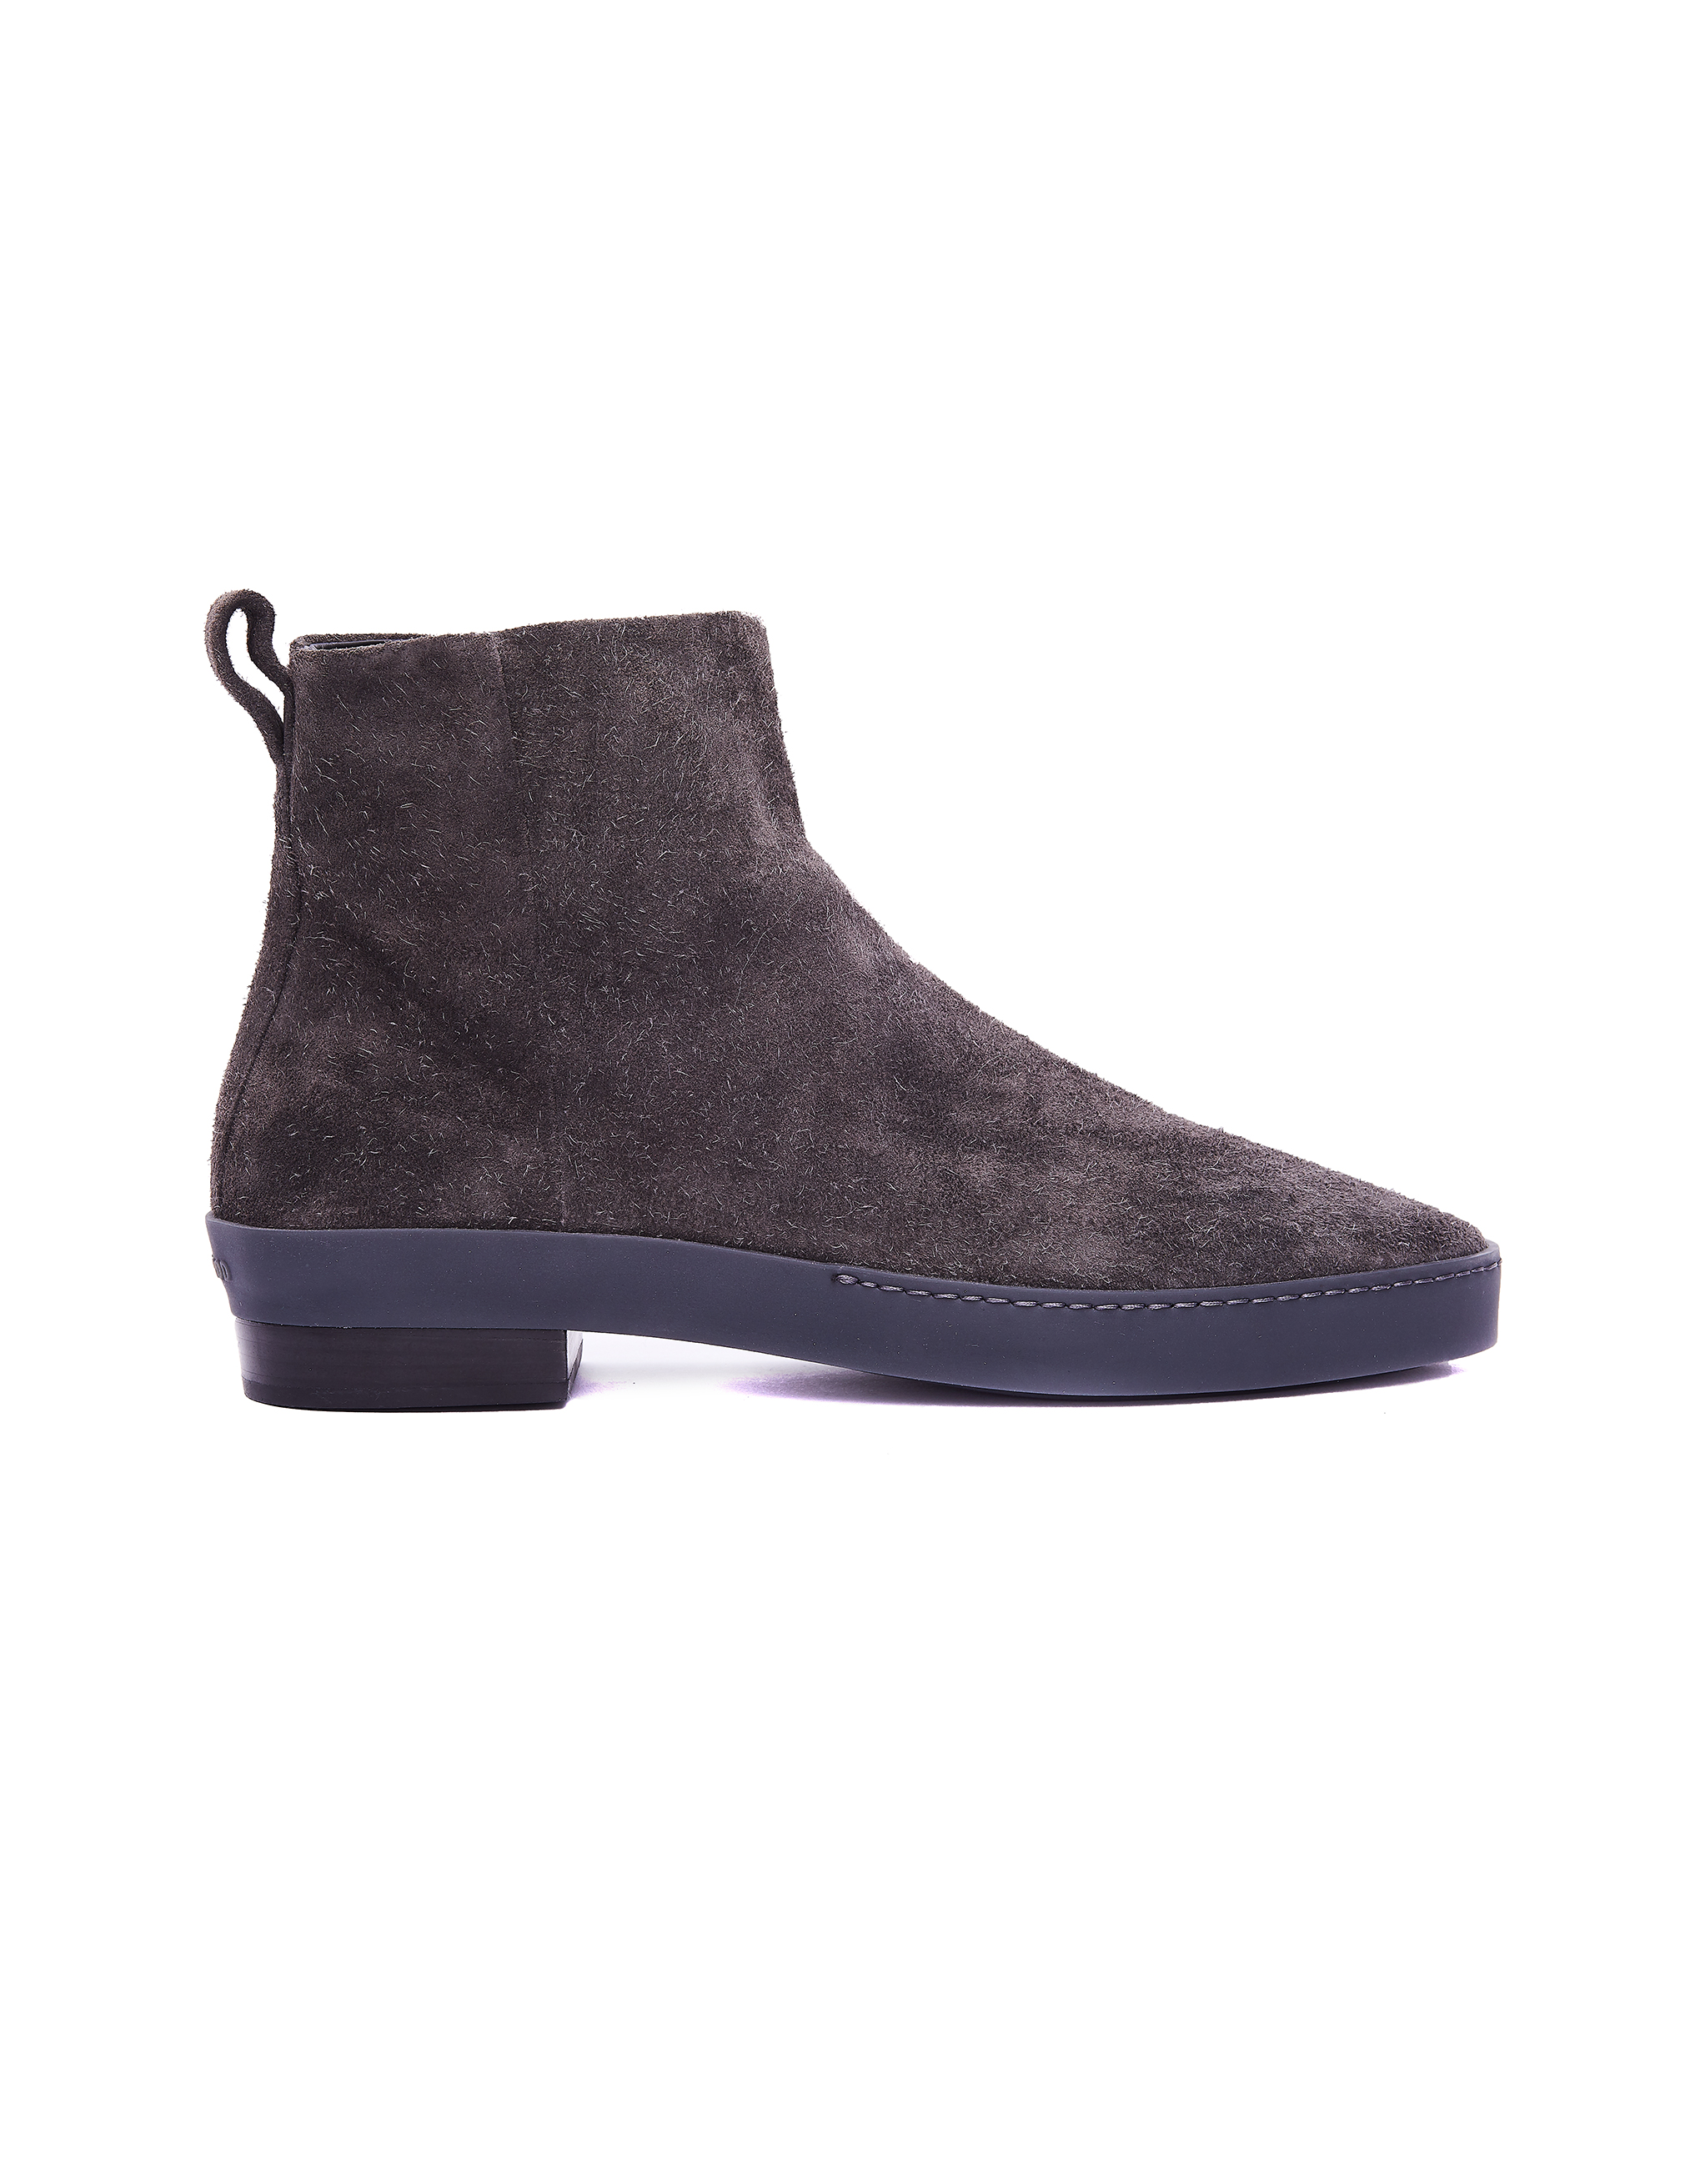 Fear of God Suede Santa Fe Chelsea Boots